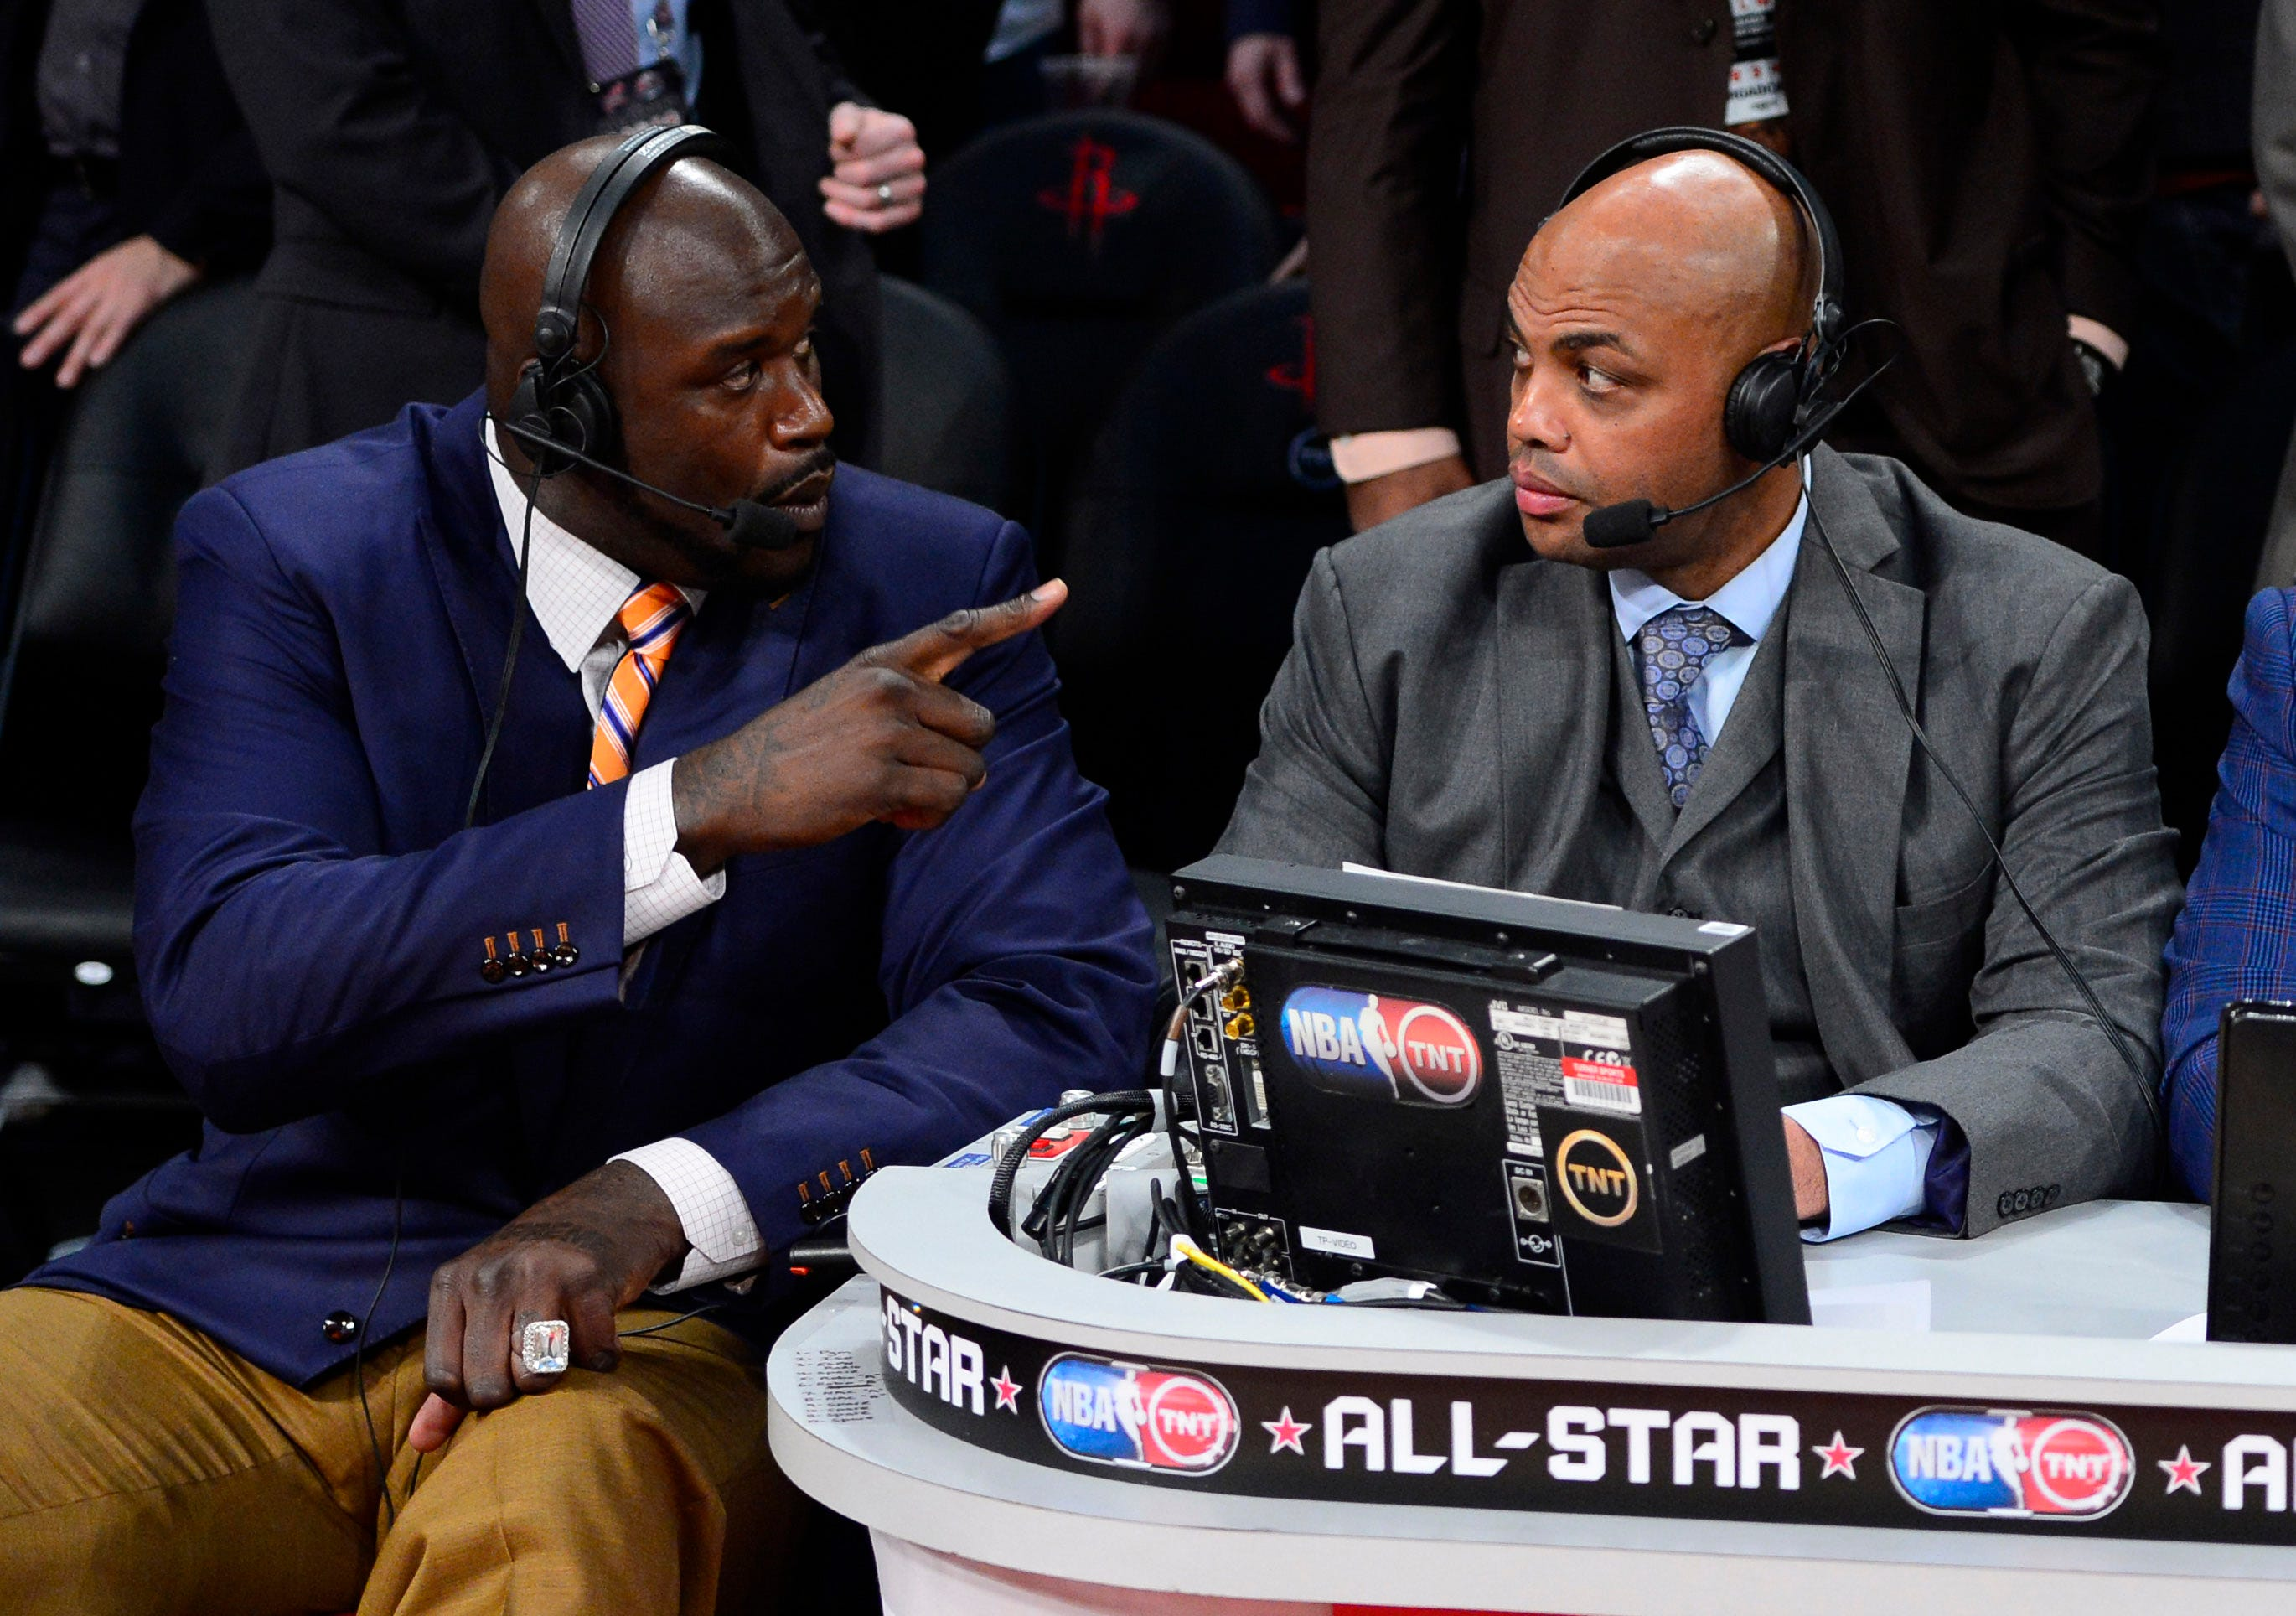 Shaquille ONeal, Charles Barkley, Kenny Smith debate NBAs China controversy